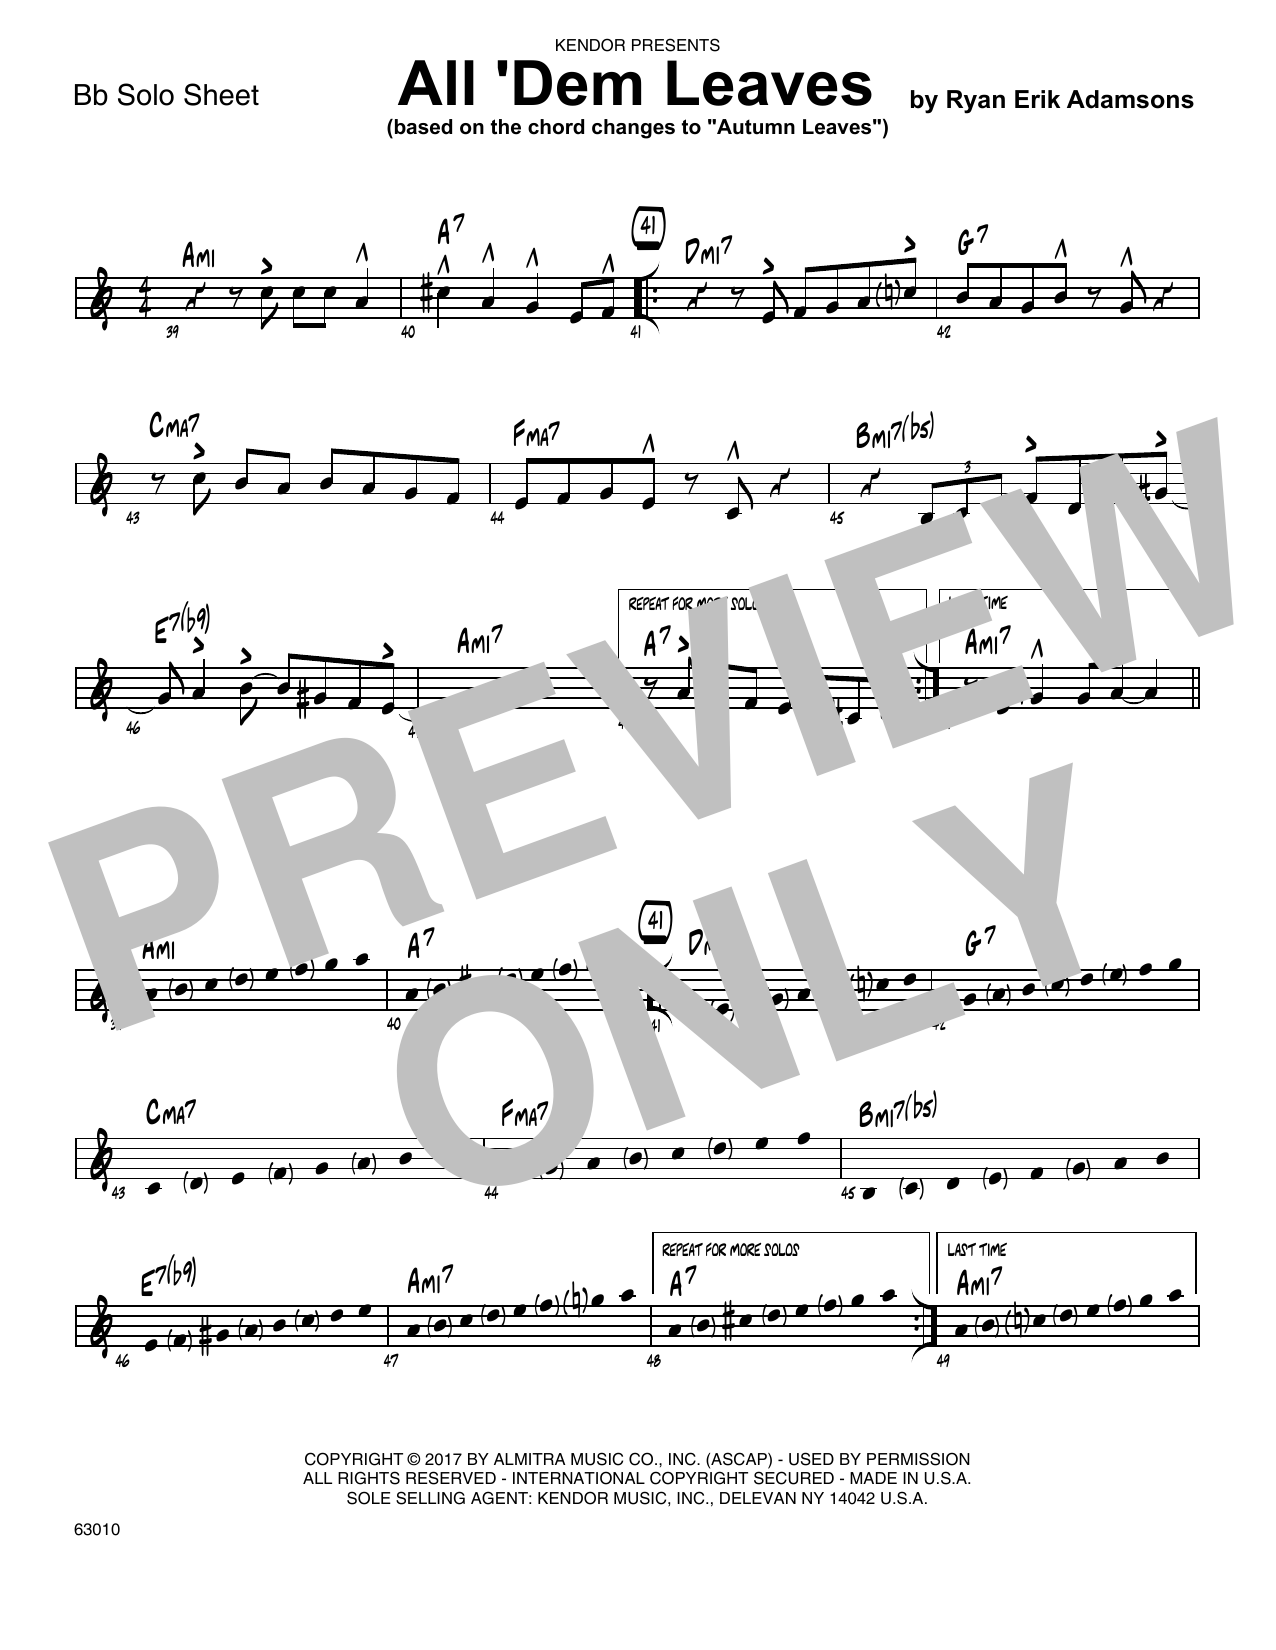 All 'Dem Leaves (based on the chord changes to Autumn Leaves) - Solo Sheet - Tenor Sax Sheet Music